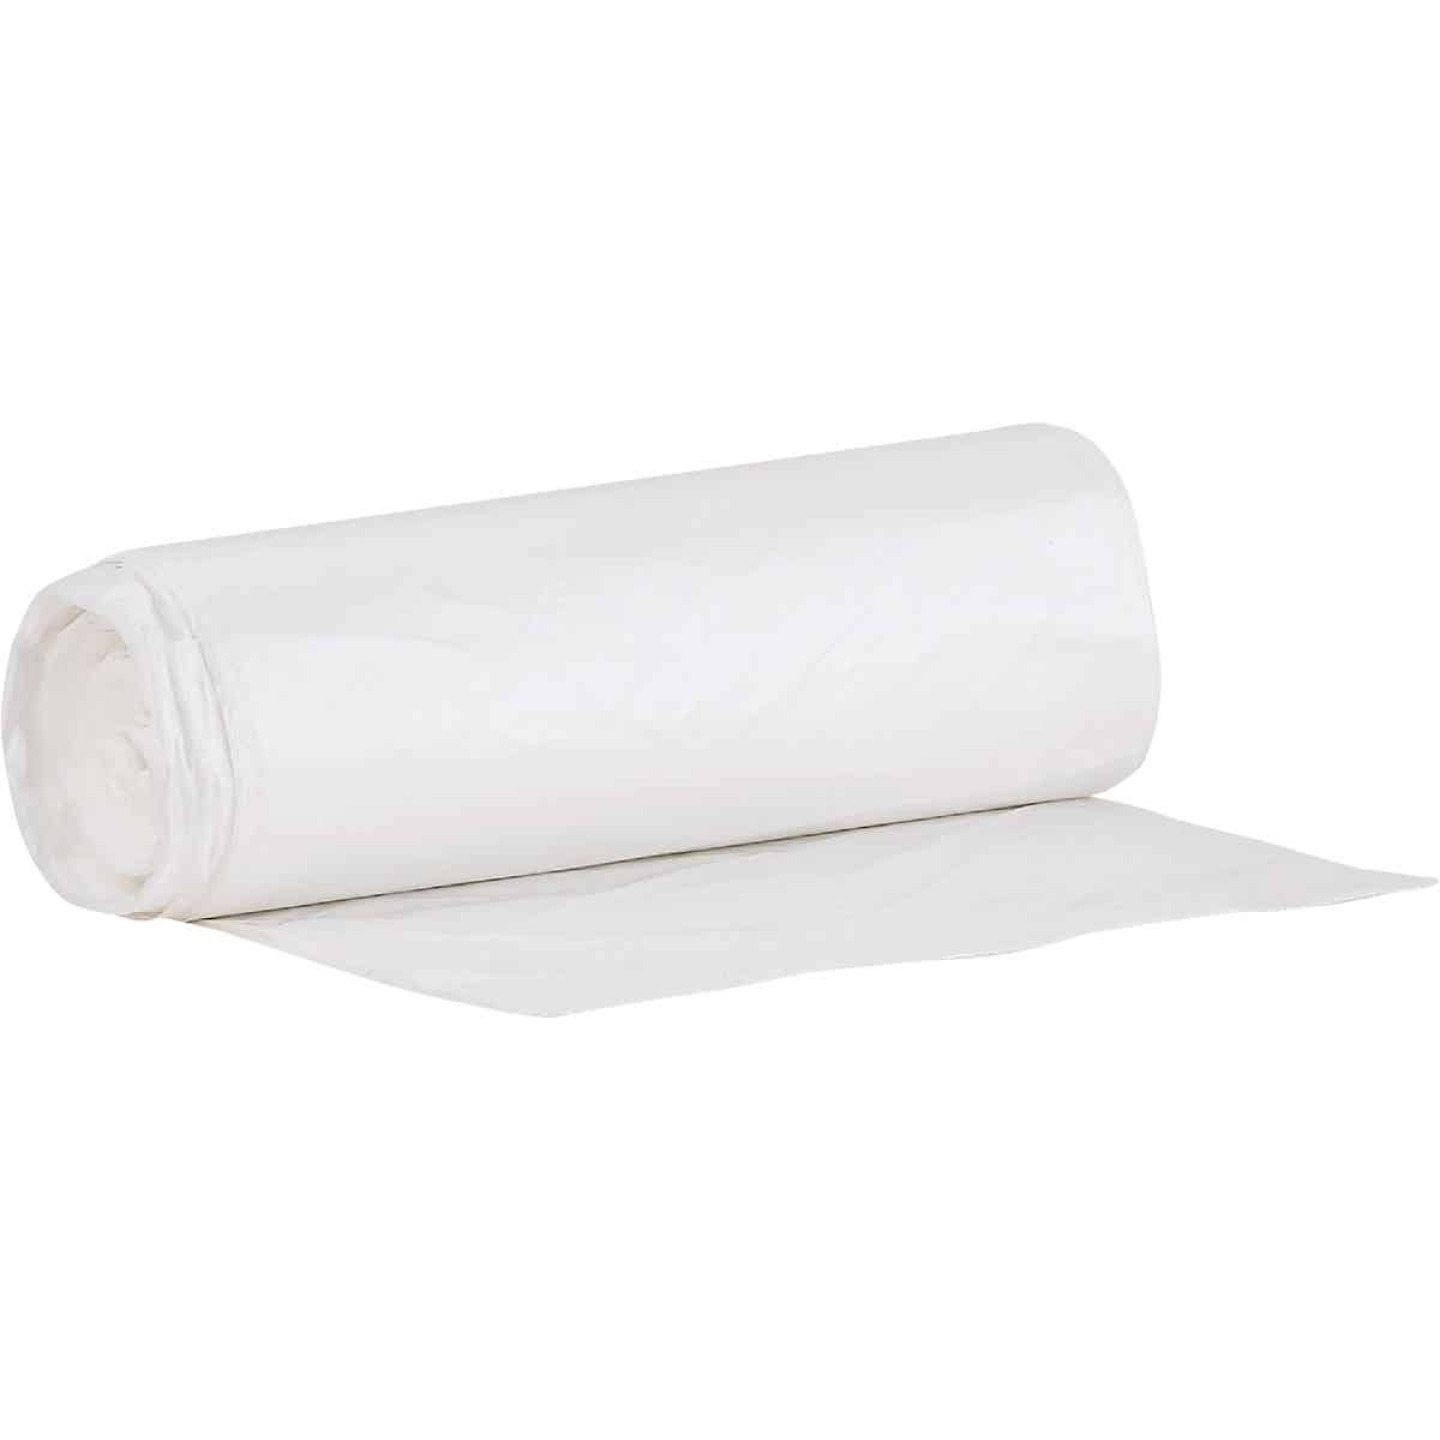 Performance Plus 45 Gal. Natural High Density Can Liner (250-Count) Image 1